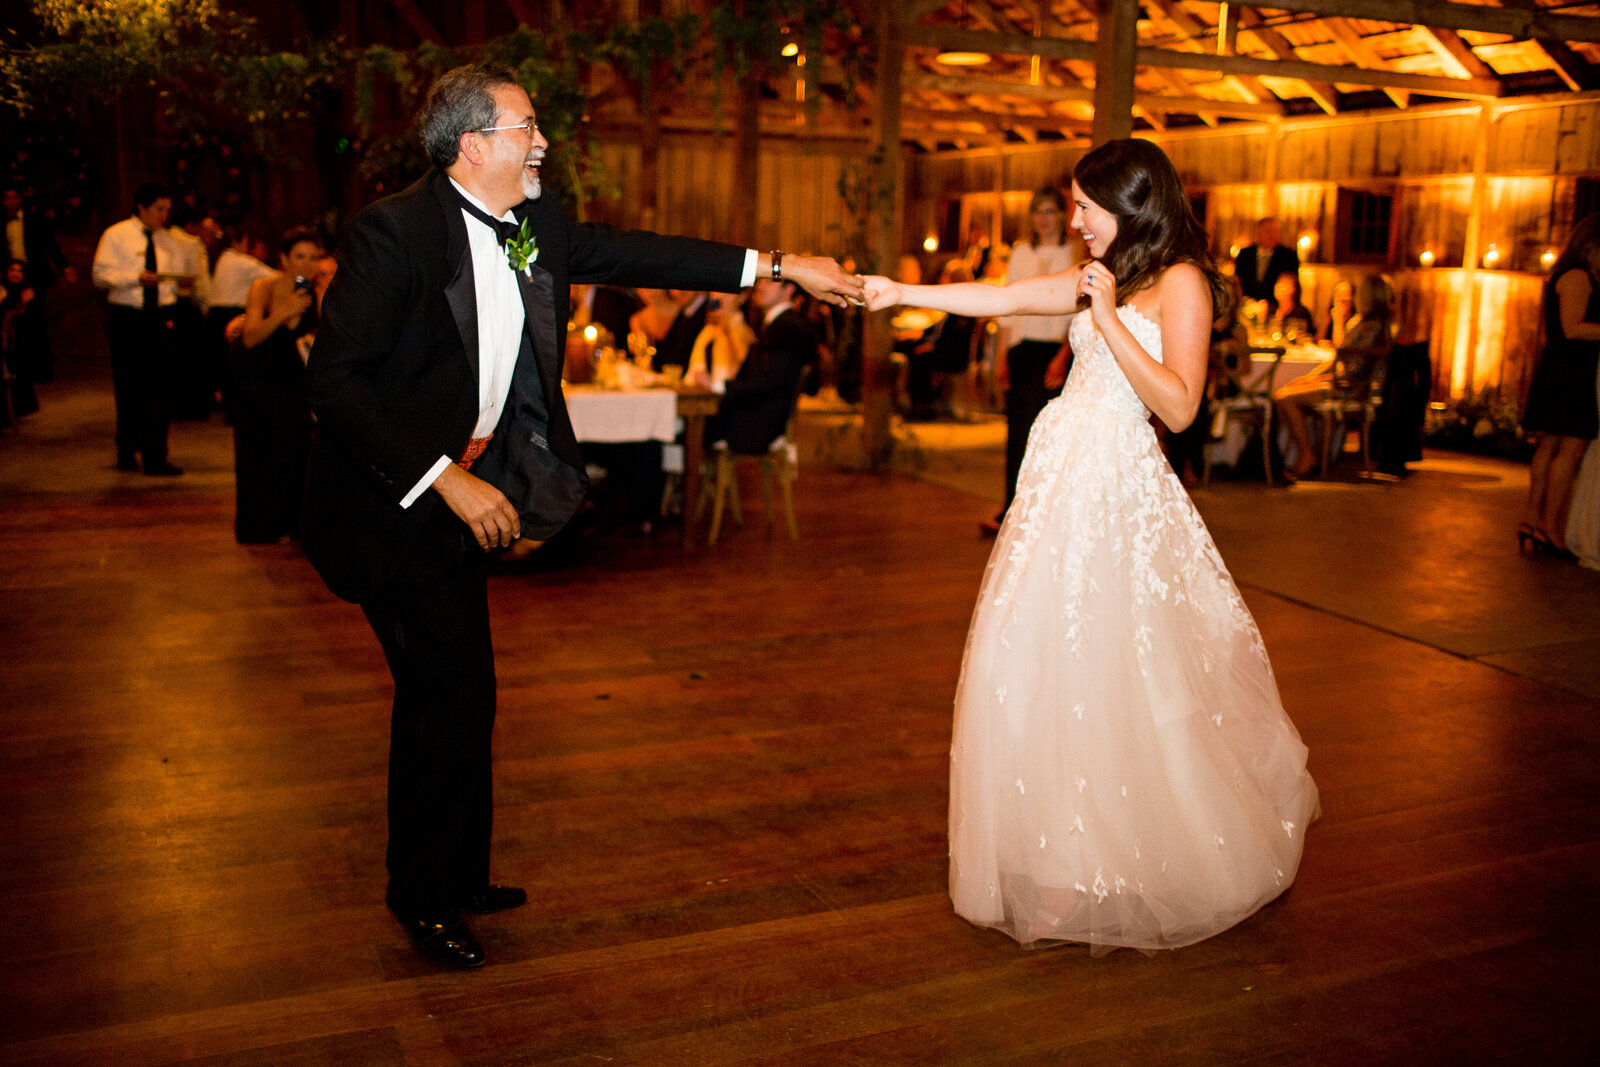 067_larissa-cleveland-photography-CJ-wedding-0975